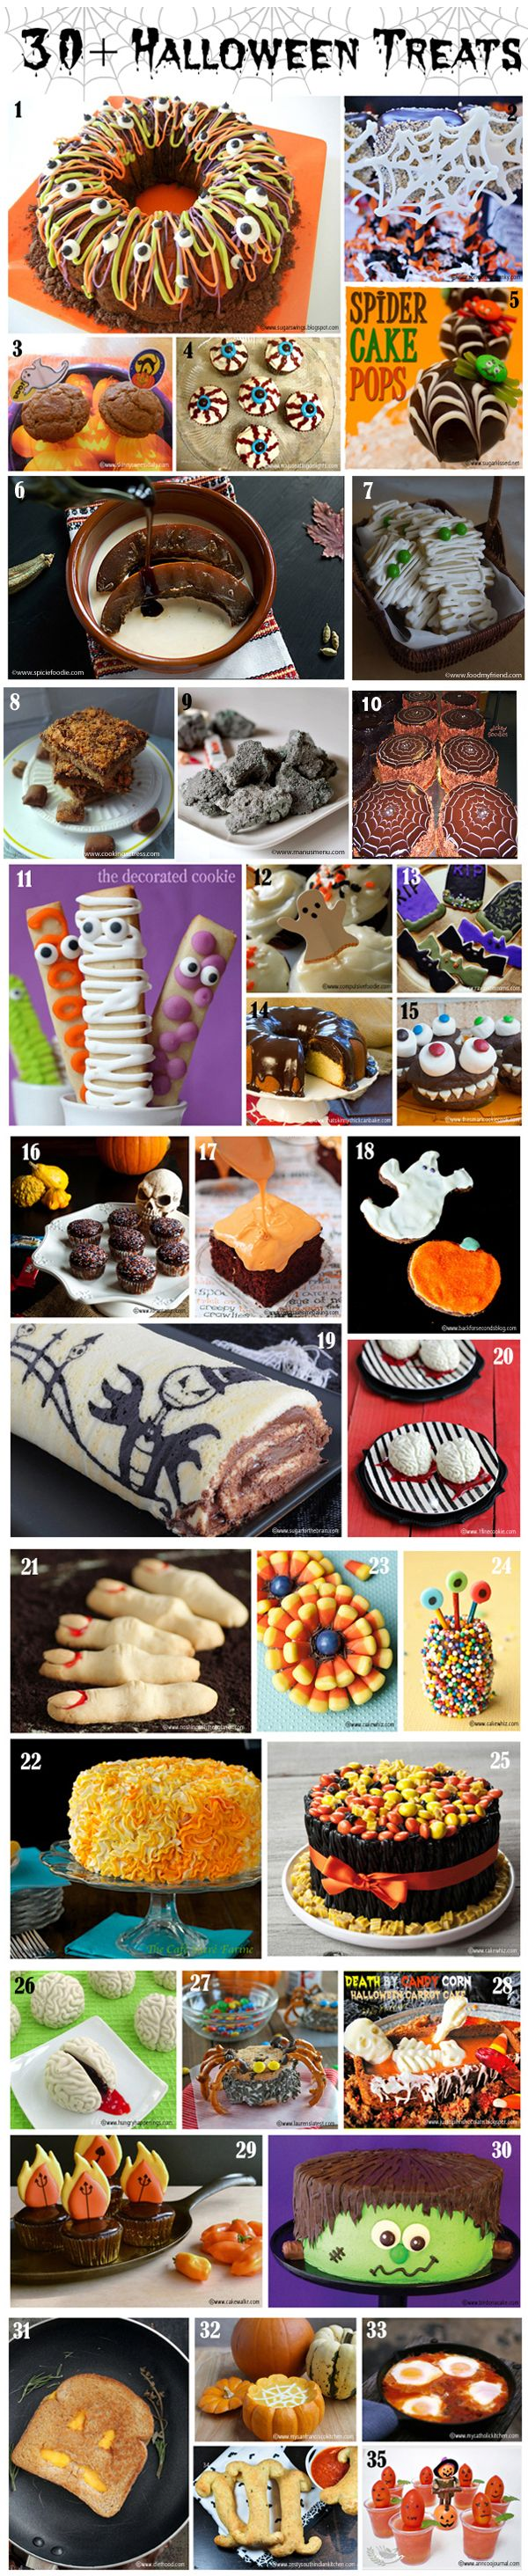 Over 30 bloggers share their FAVORITE Sweet and Savory Halloween treats... There is something for everyone!!!! #halloweenideas #spookytreats